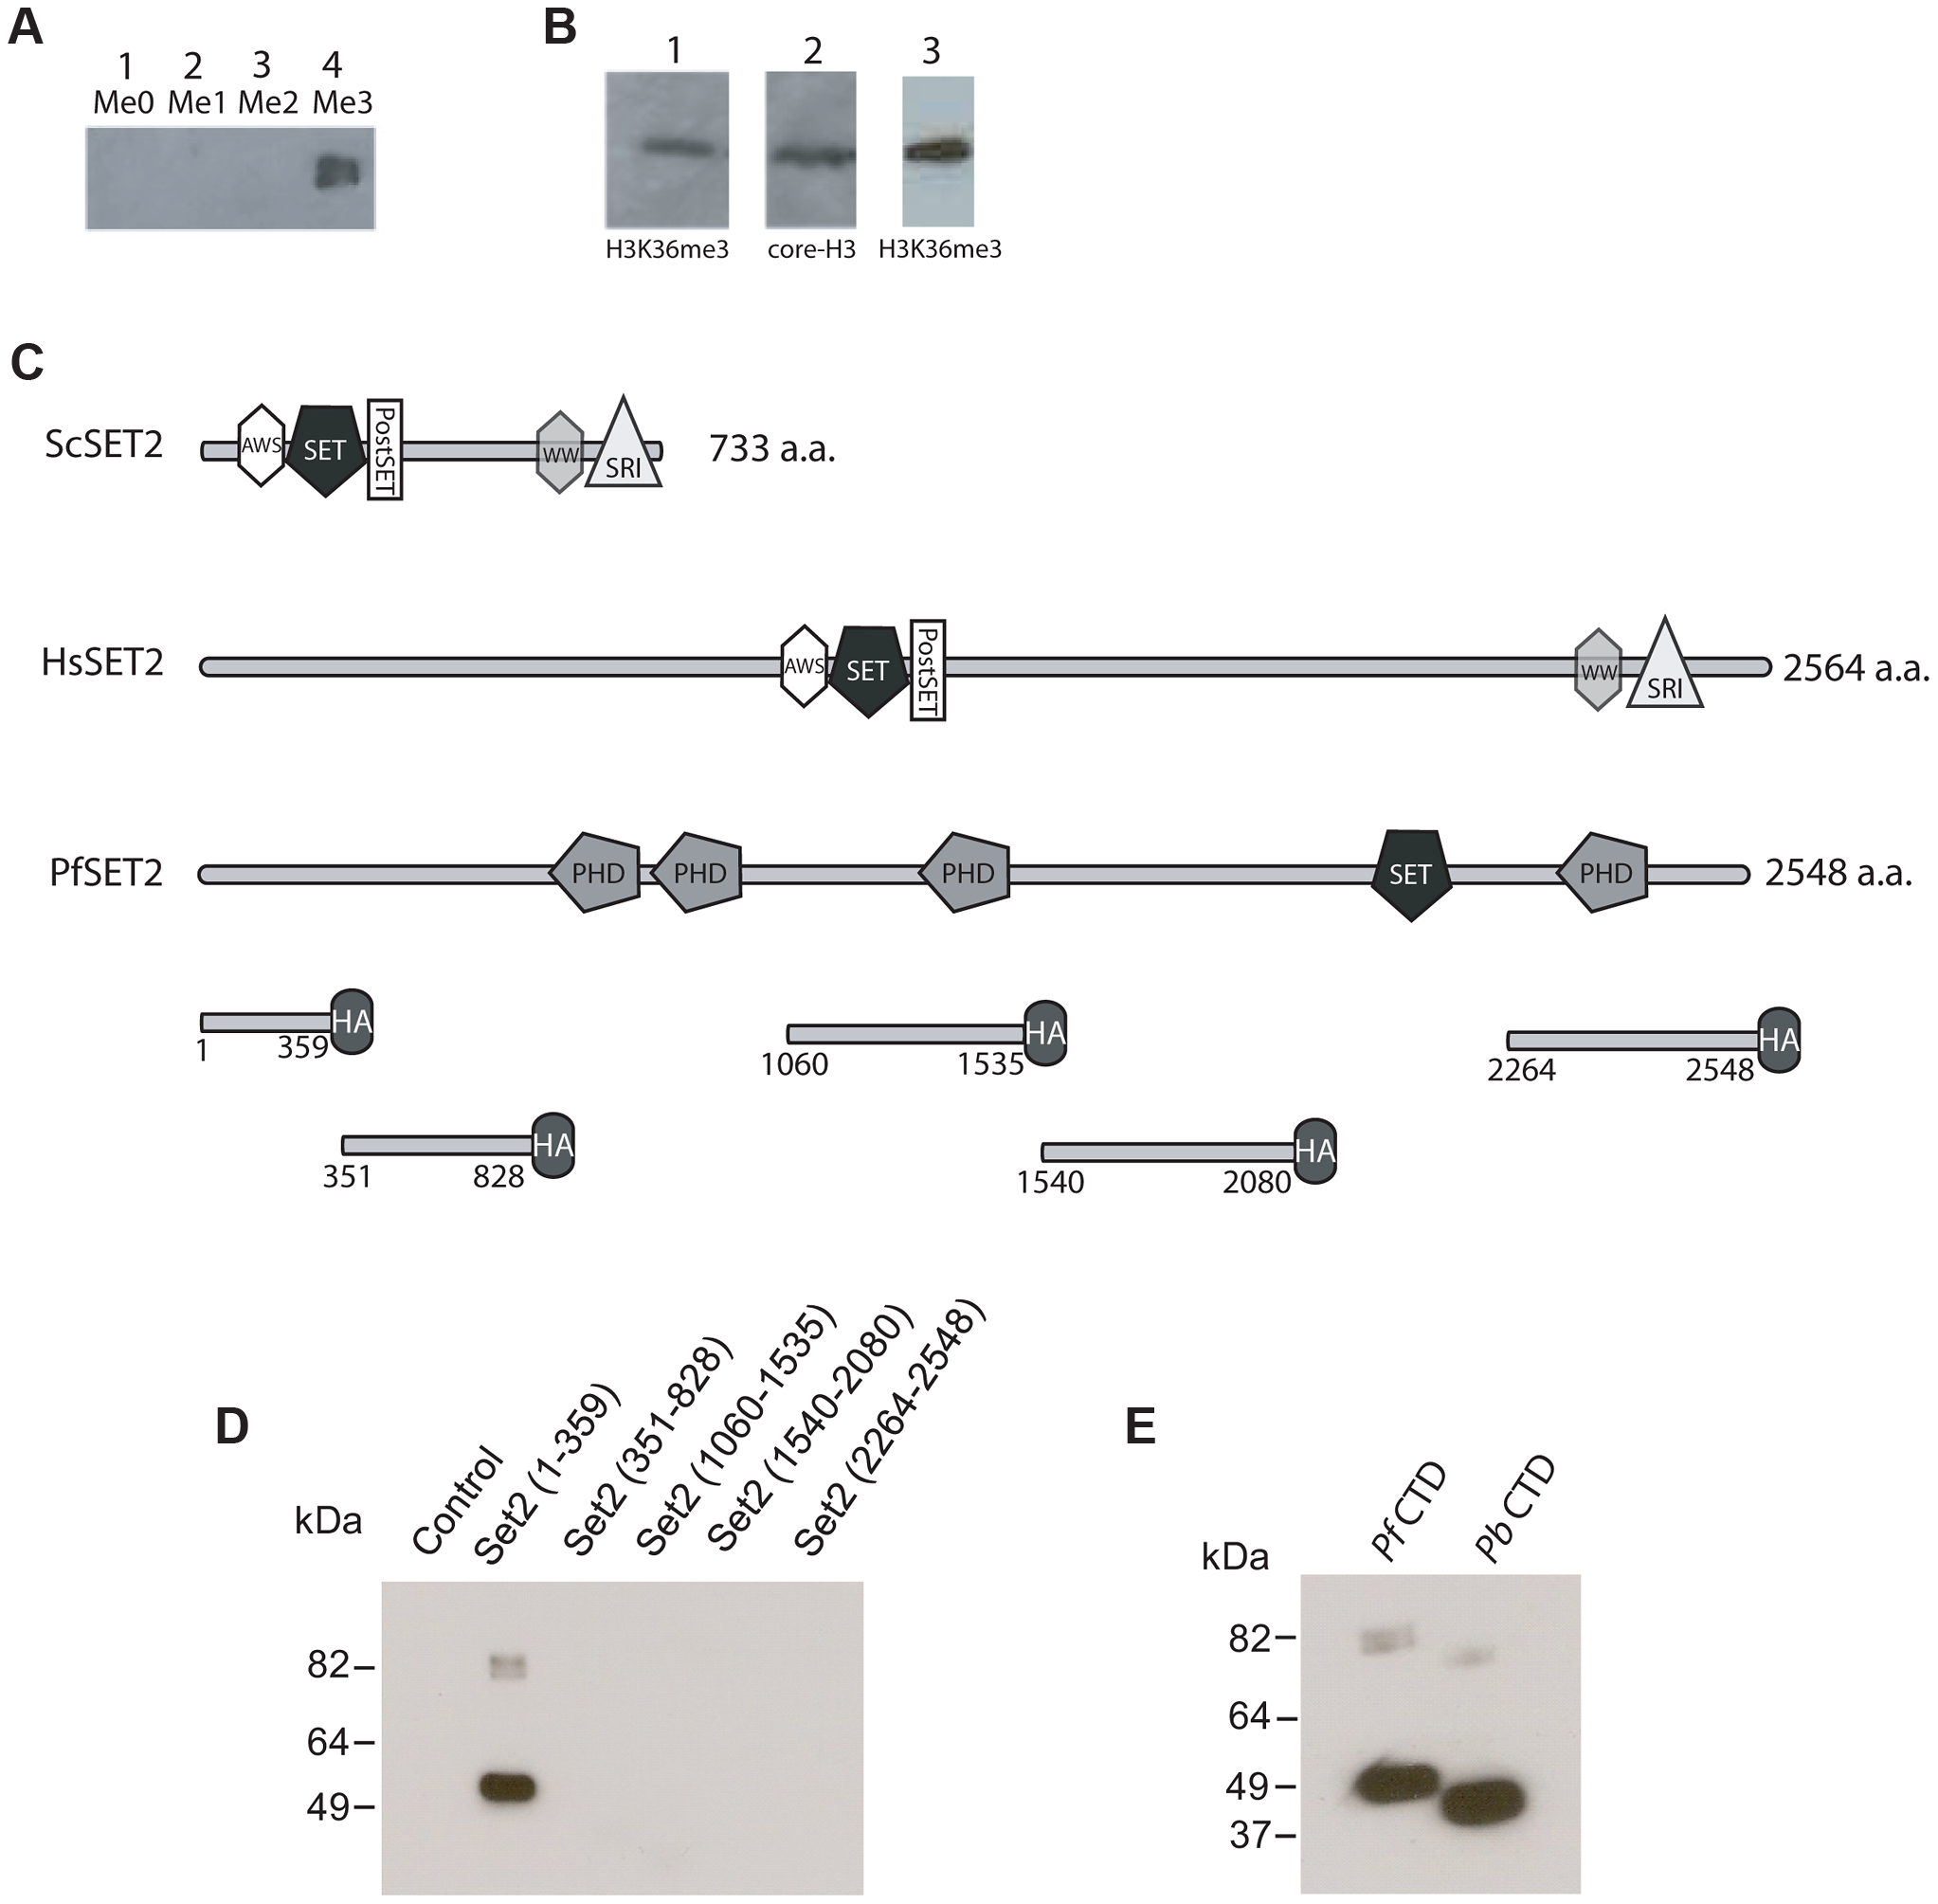 Detection of H3K36me3 in chromatin from <i>P. falciparum</i> and identification of the Rpb1binding region of PfSET2.